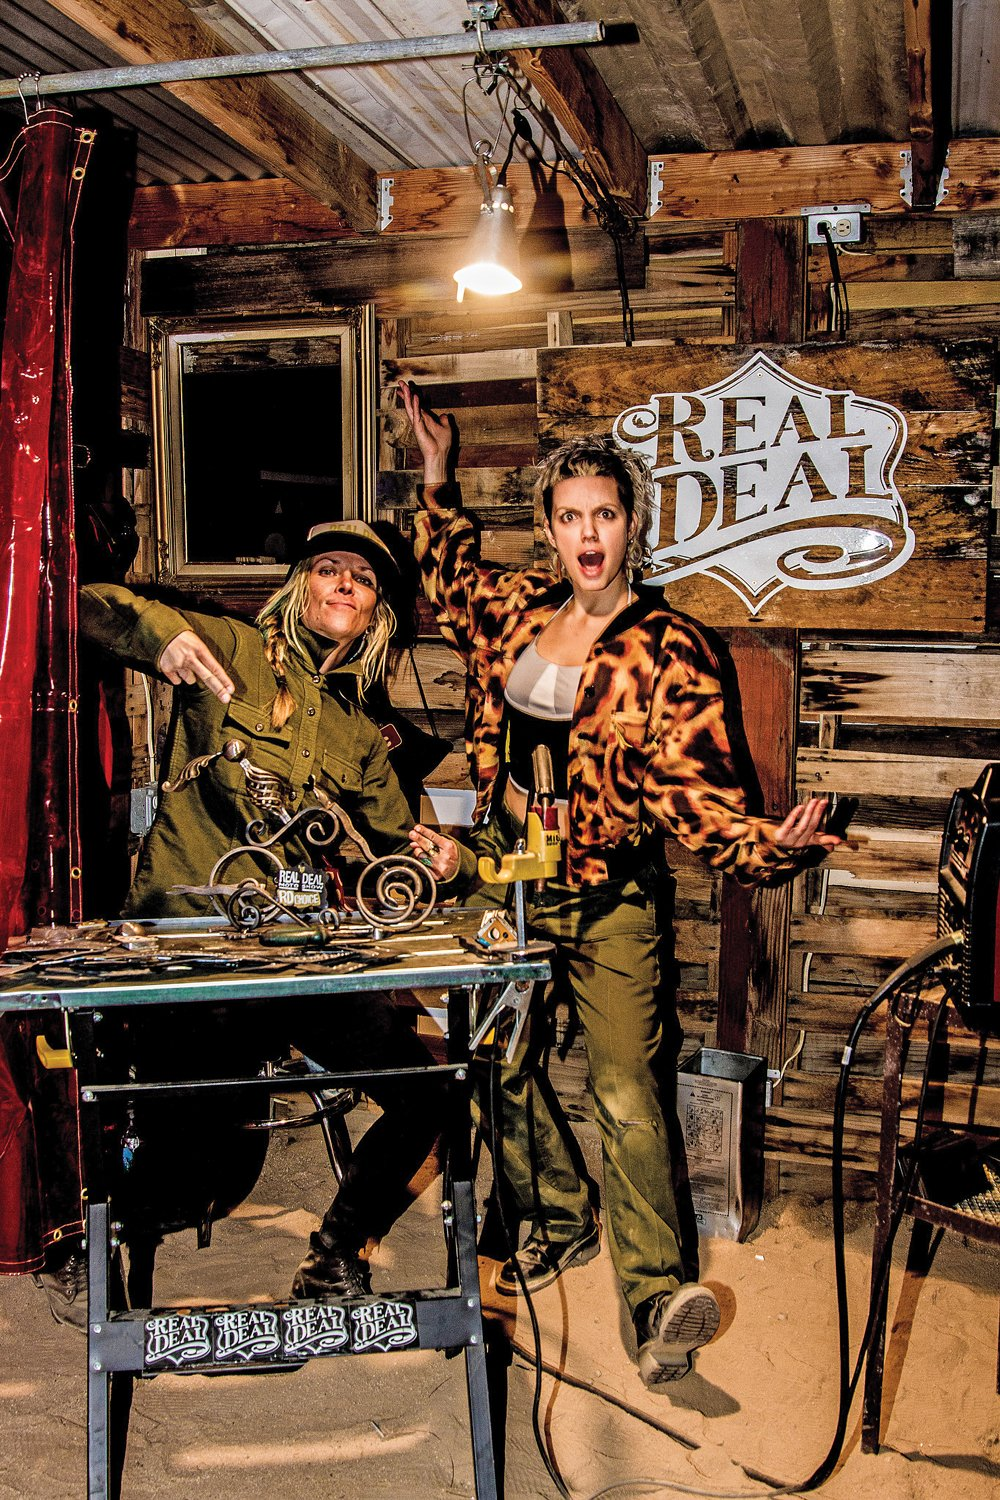 Jessi Combs and Thea Ulrich welding booth